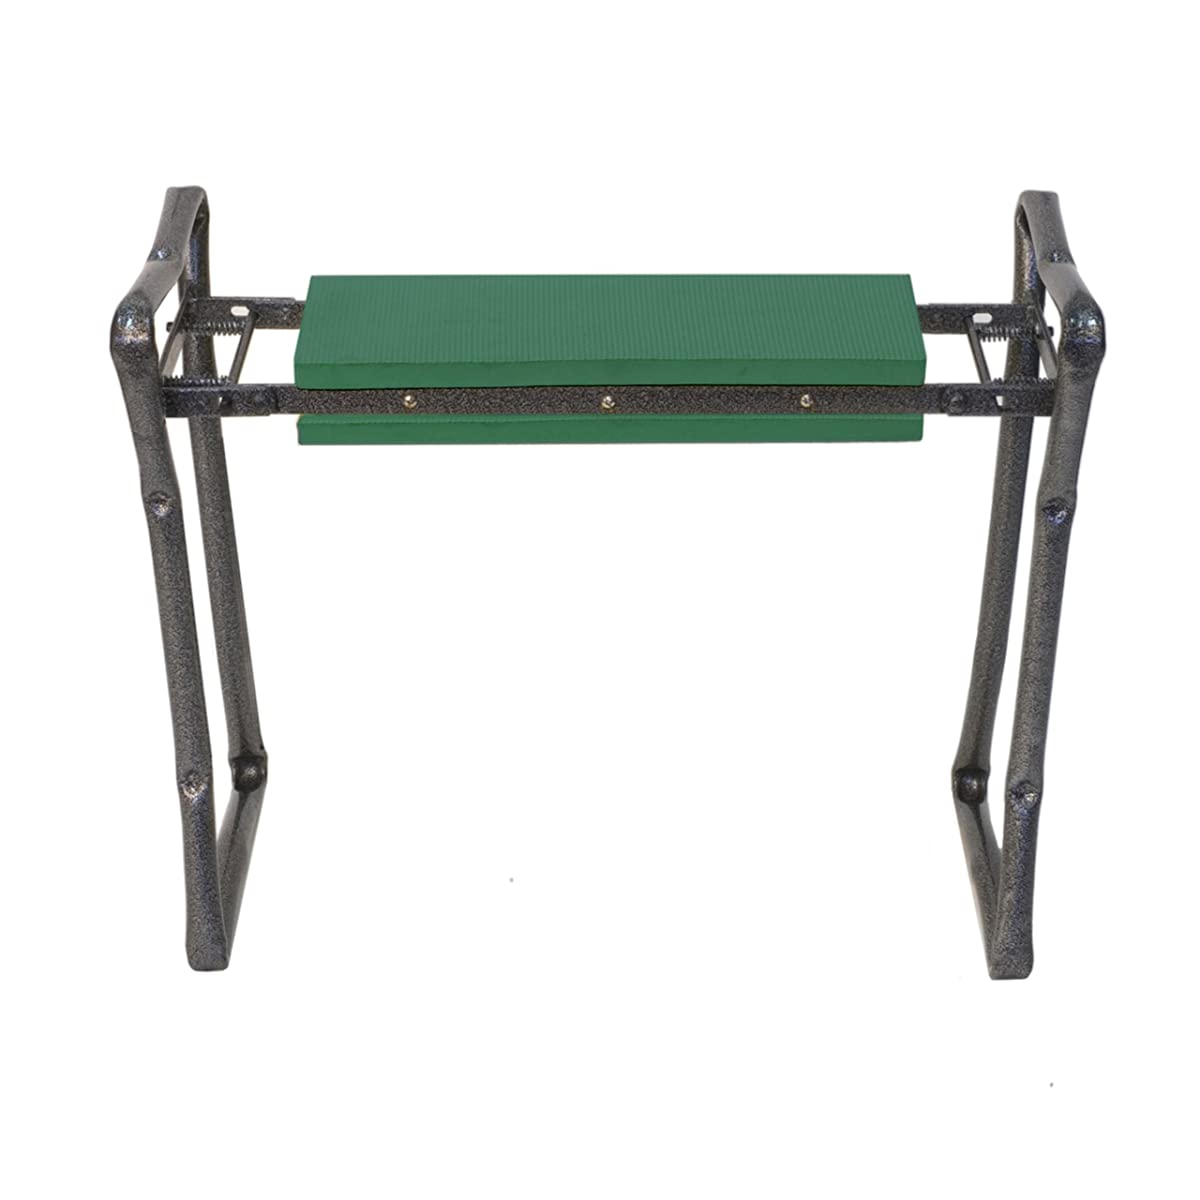 Yard Butler GKS-2 Garden Kneeler and Seat(Older Model)